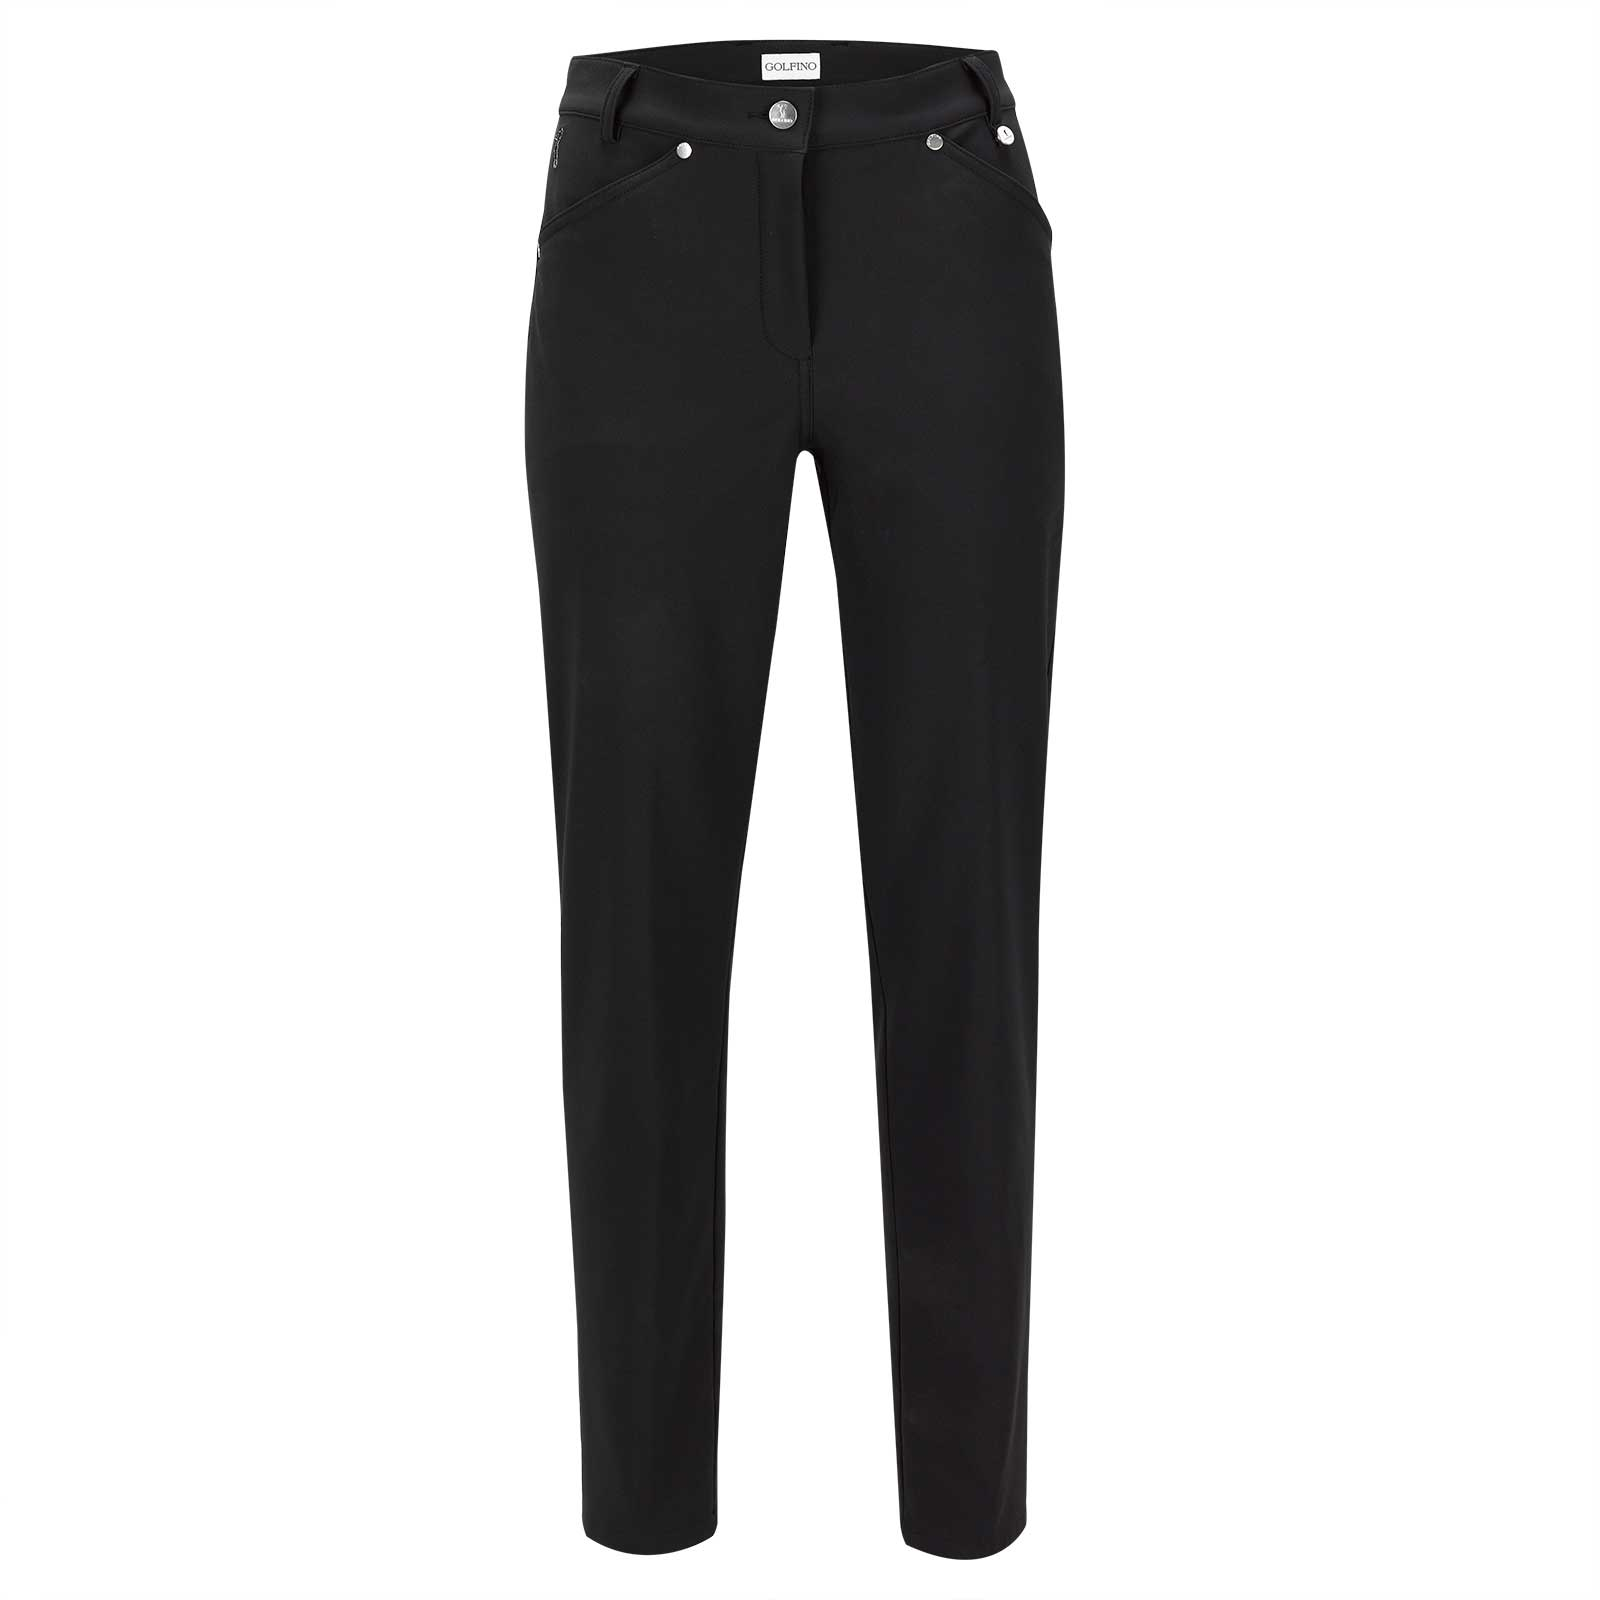 Modern 7/8 ladies' 4-way stretch Thermo golf trousers in slim fit